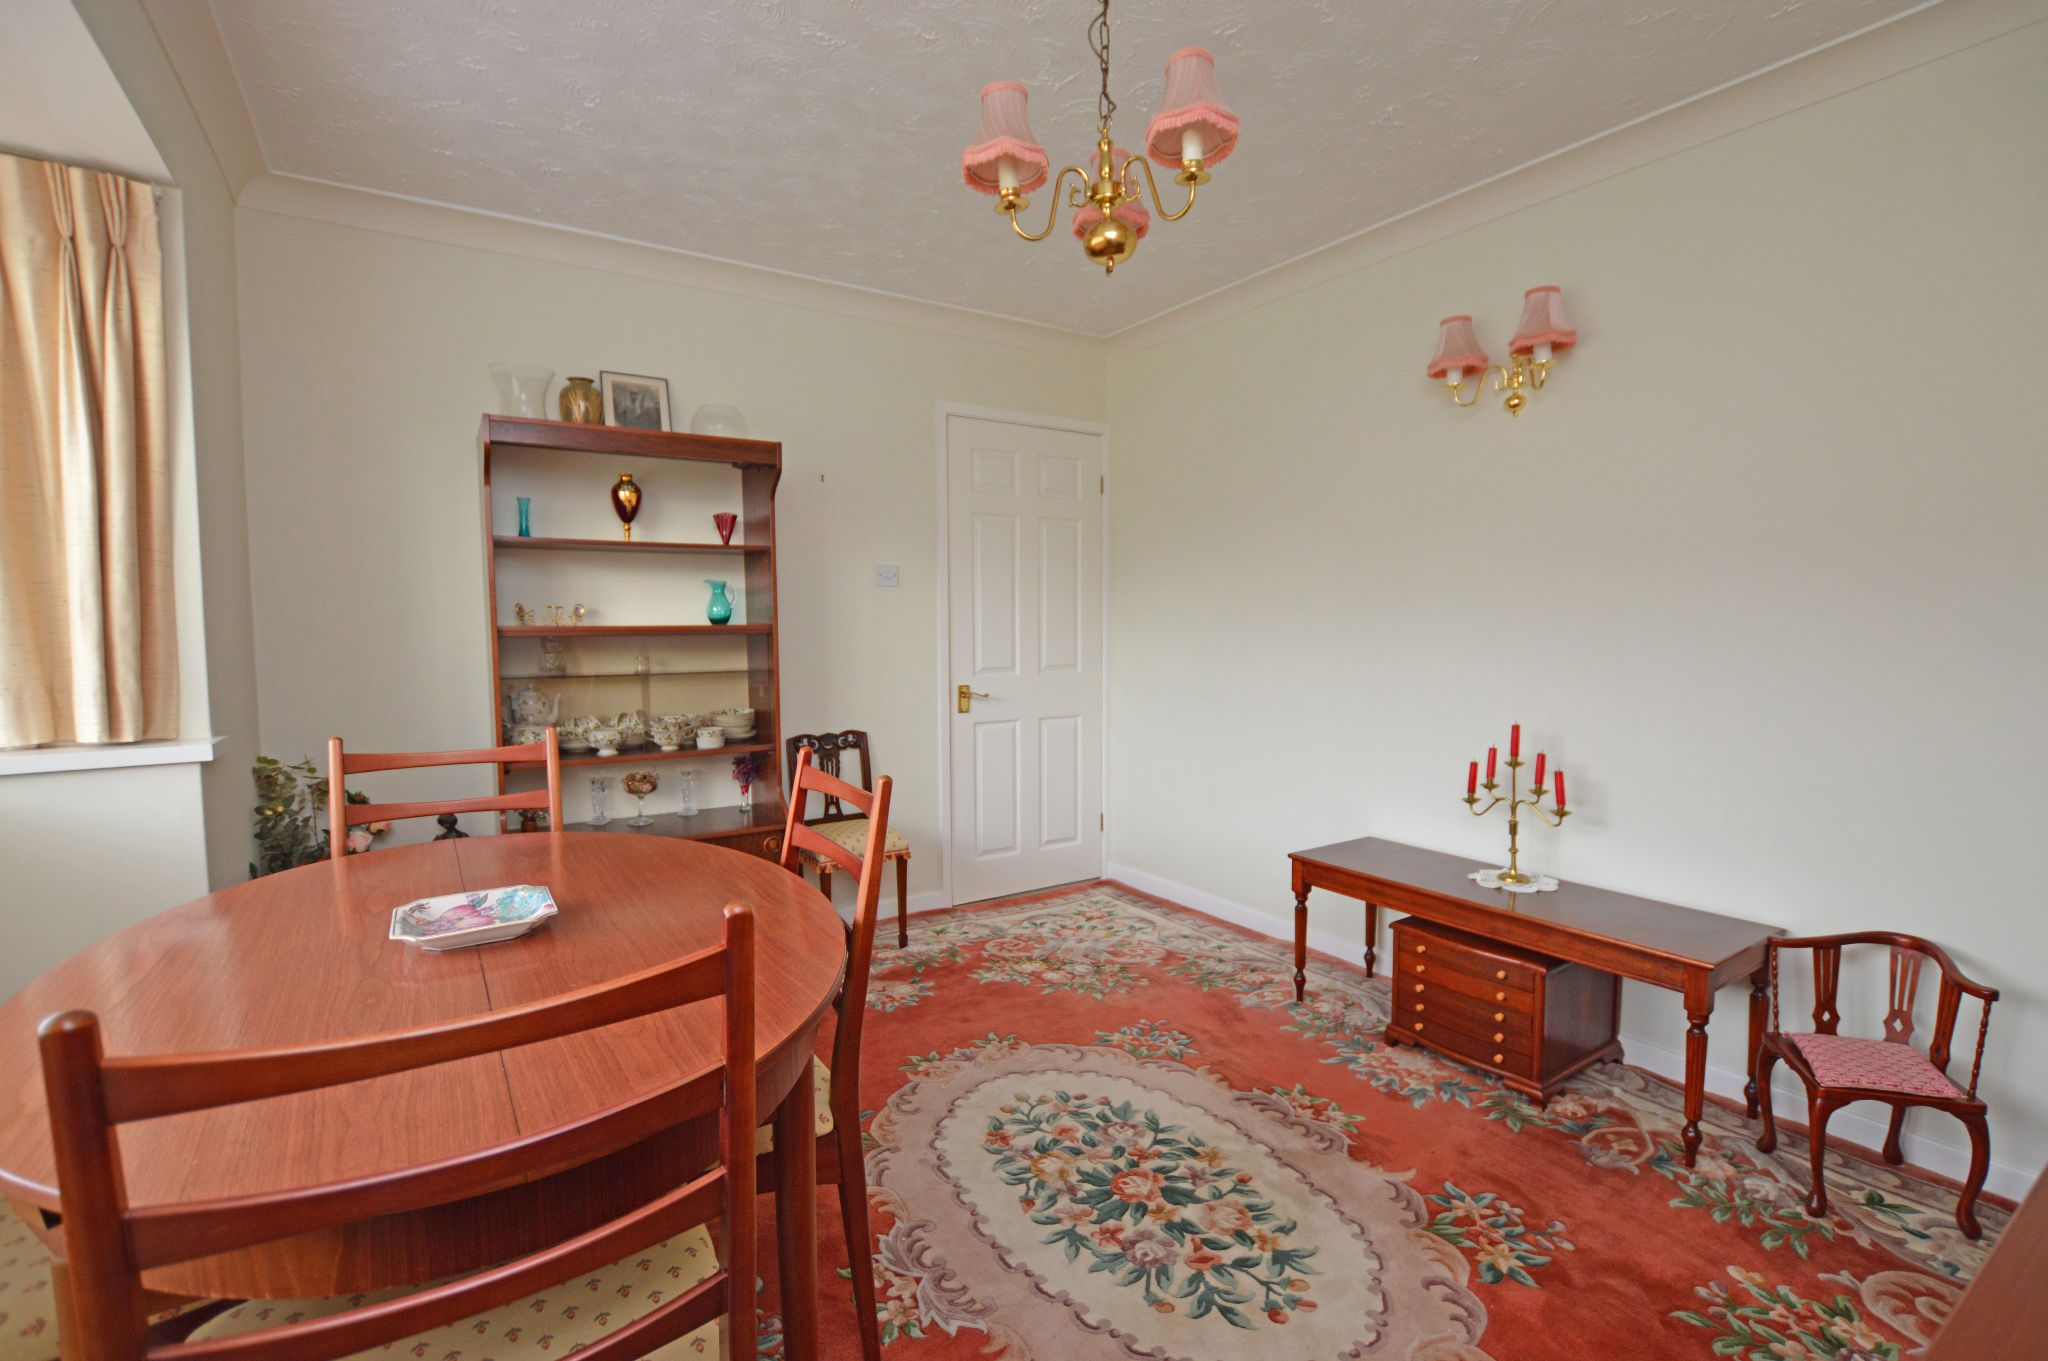 4 bedroom detached house For Sale in Abergele - Dining Room View 3